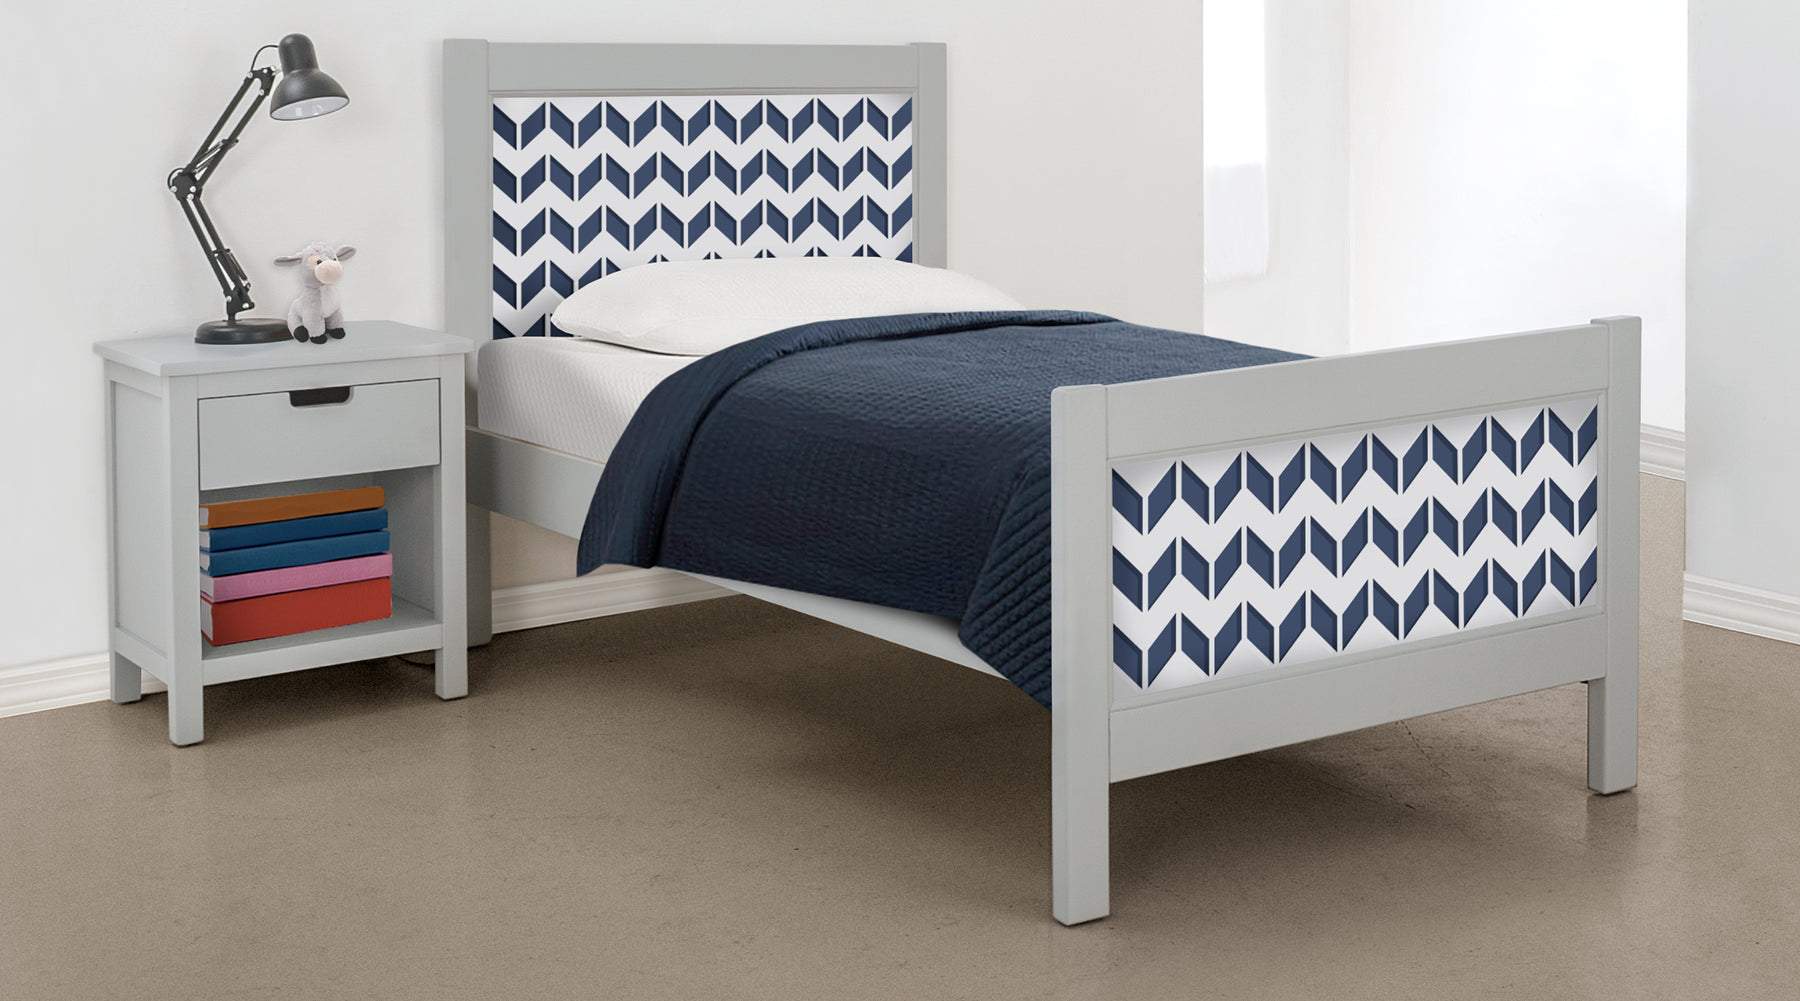 P'kolino Nesto Collection - Fully customizable twin beds and bunk beds. Beautifully designed with safety in mind.